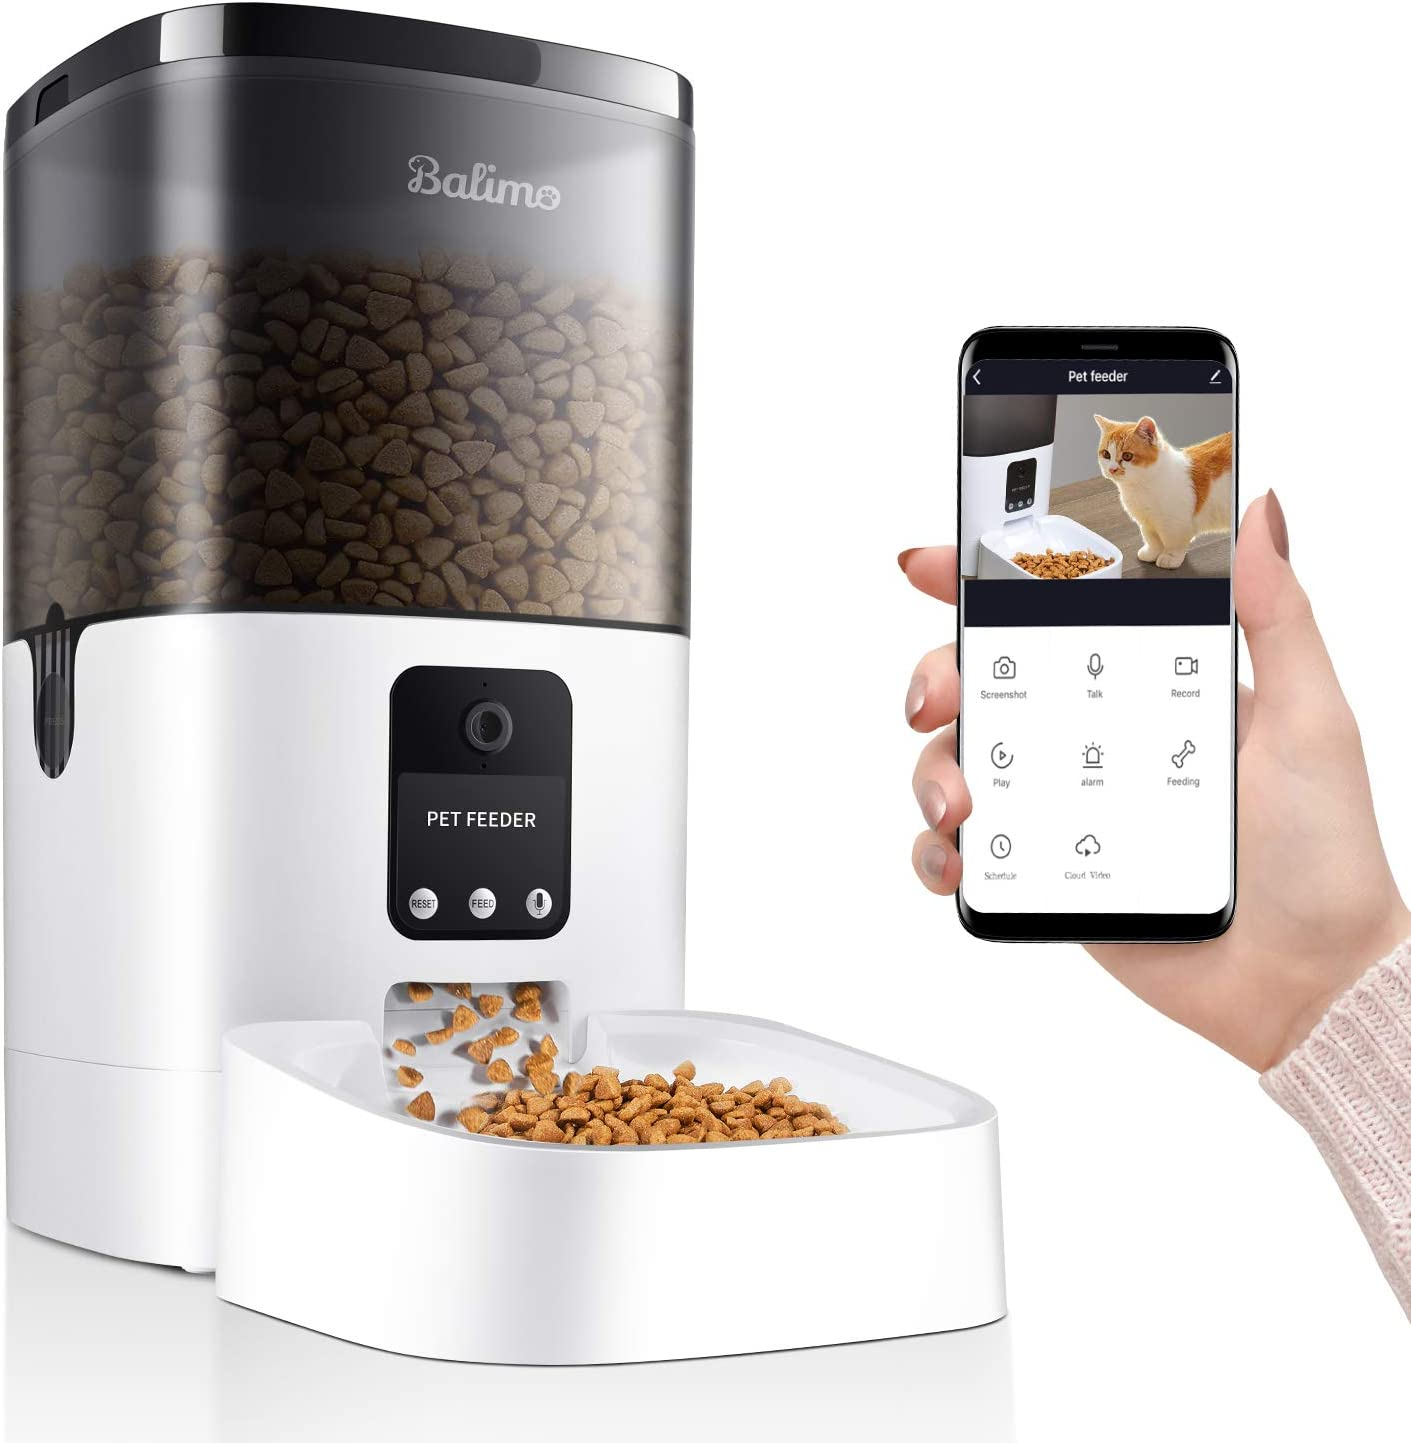 Balimo 6L Smart Pet Feeder for Dog and Cat, Automatic Feeder with 1080P HD Camera for Video Recording, Timer Programmable Feeding, APP Remotely Control, up to 4 Meals per Day, 2.4G Wi-Fi only